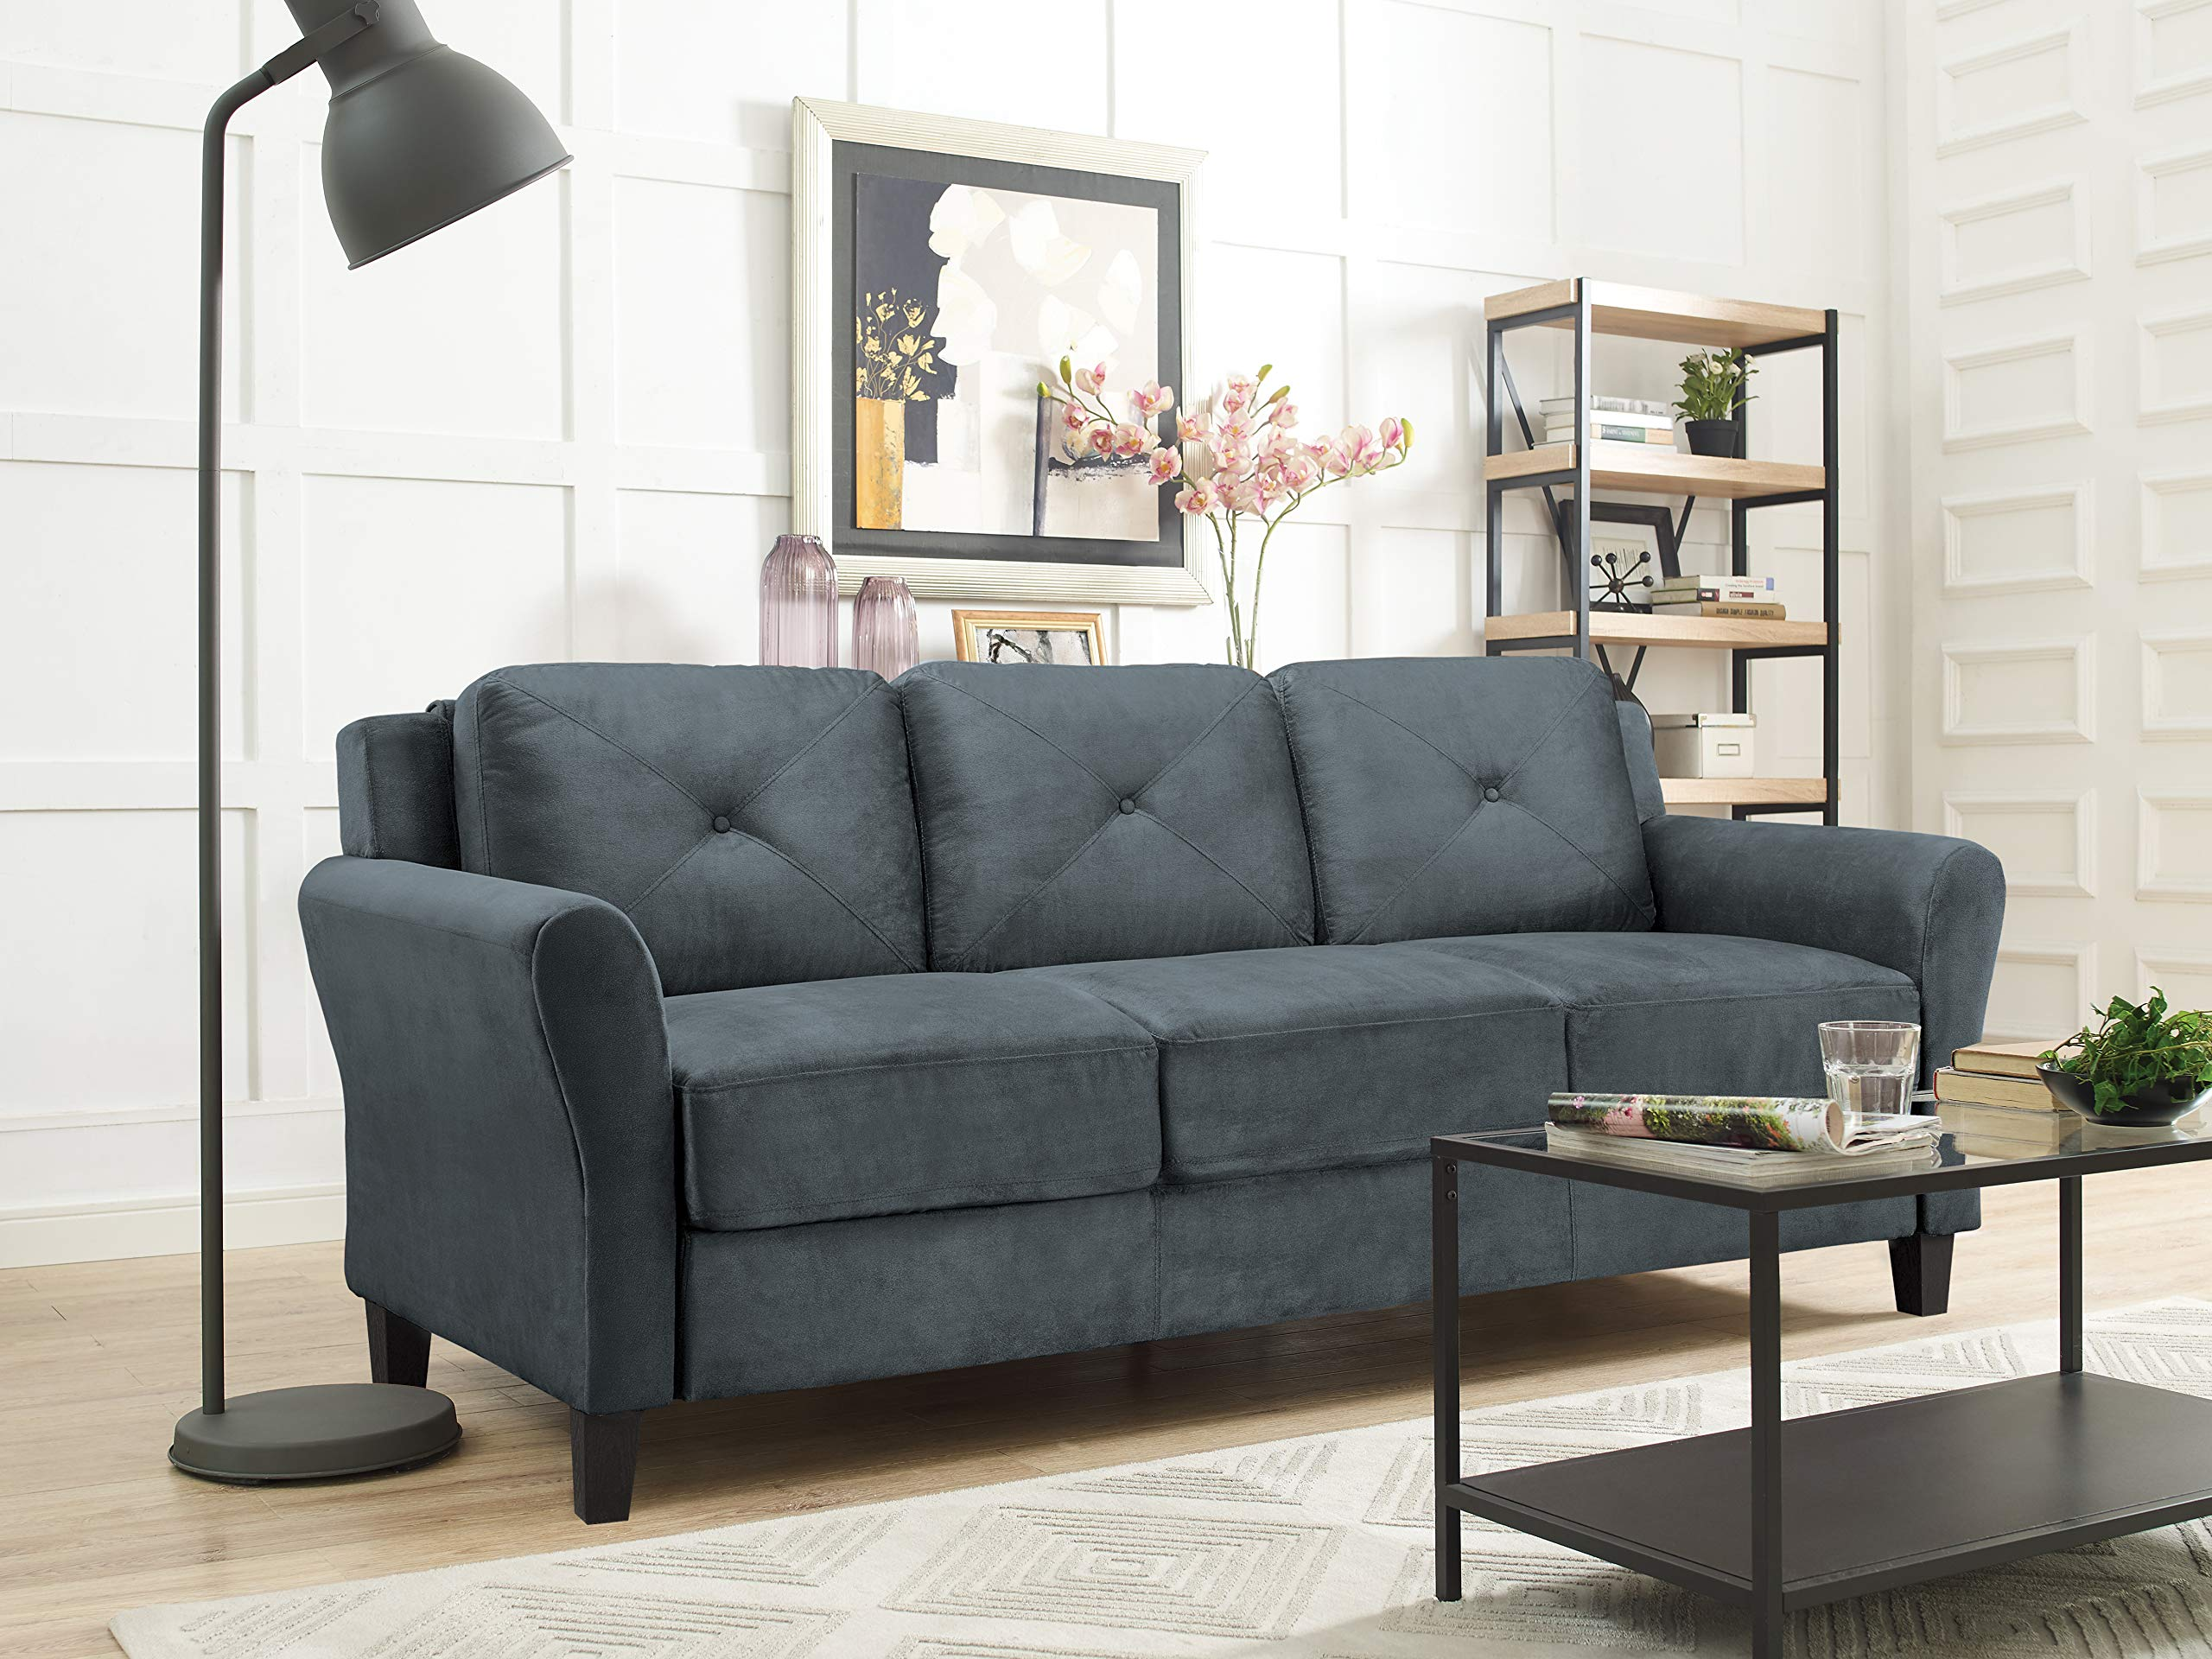 LifeStyle Solutions Harrington Sofa in Grey, Dark Grey by LifeStyle Solutions